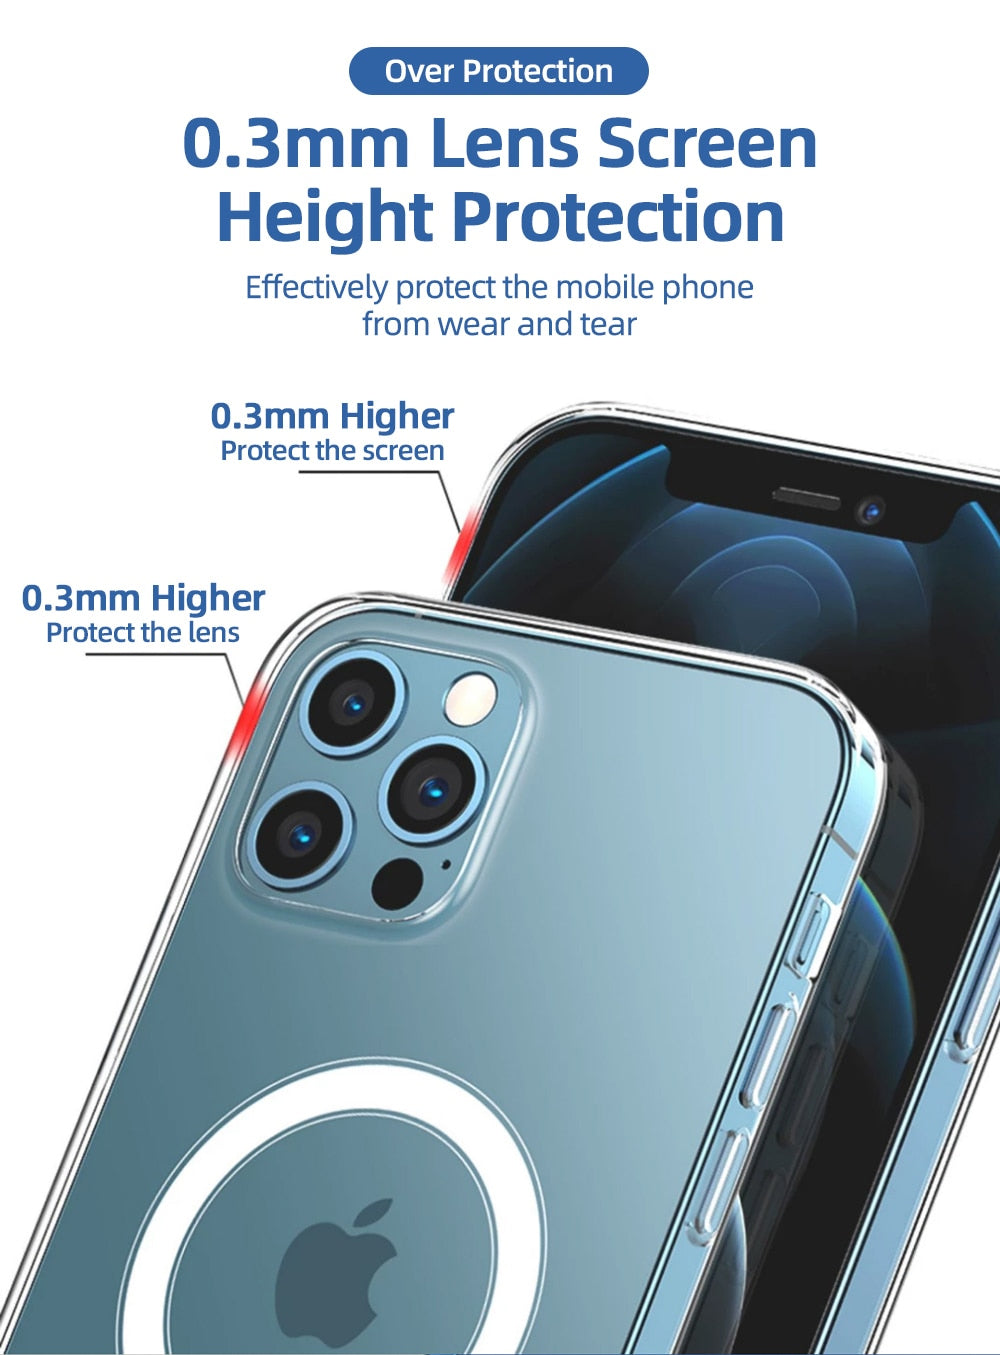 Glossy Transparent Shockproof Magnetic Case For iPhone 12 Pro Max 12 Mini Case For MagSafe Wireless Charging Full Protection PC+TPU Clear Case For iPhone